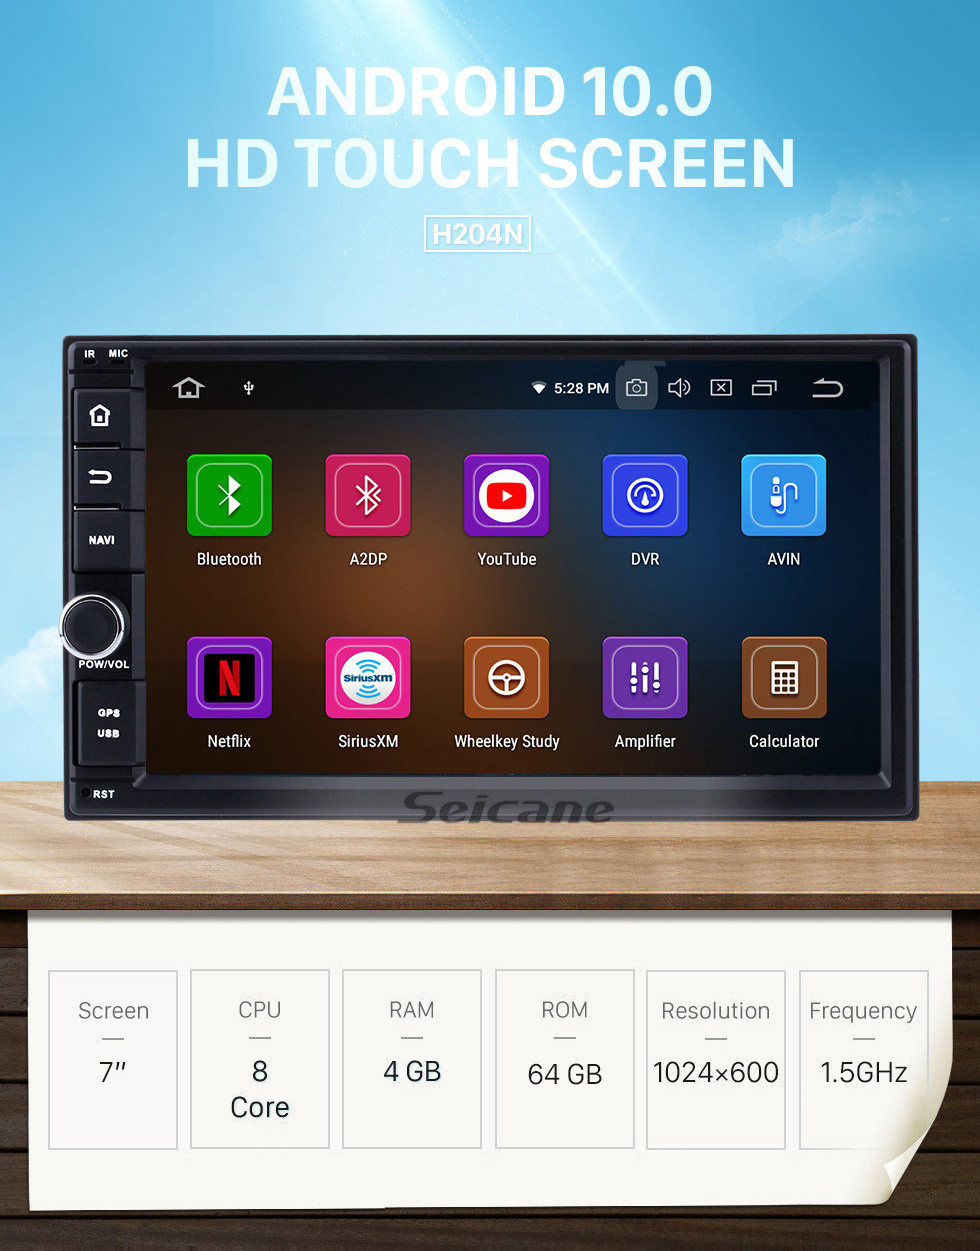 Seicane Android 10.0 2006-2011 Kia sedona Radio GPS Navigation Car Stereo DVD Player Head Unit Touch Screen Bluetooth Music WiFi 3G OBD2 Mirror Link Rearview Camera Video AUX DVR